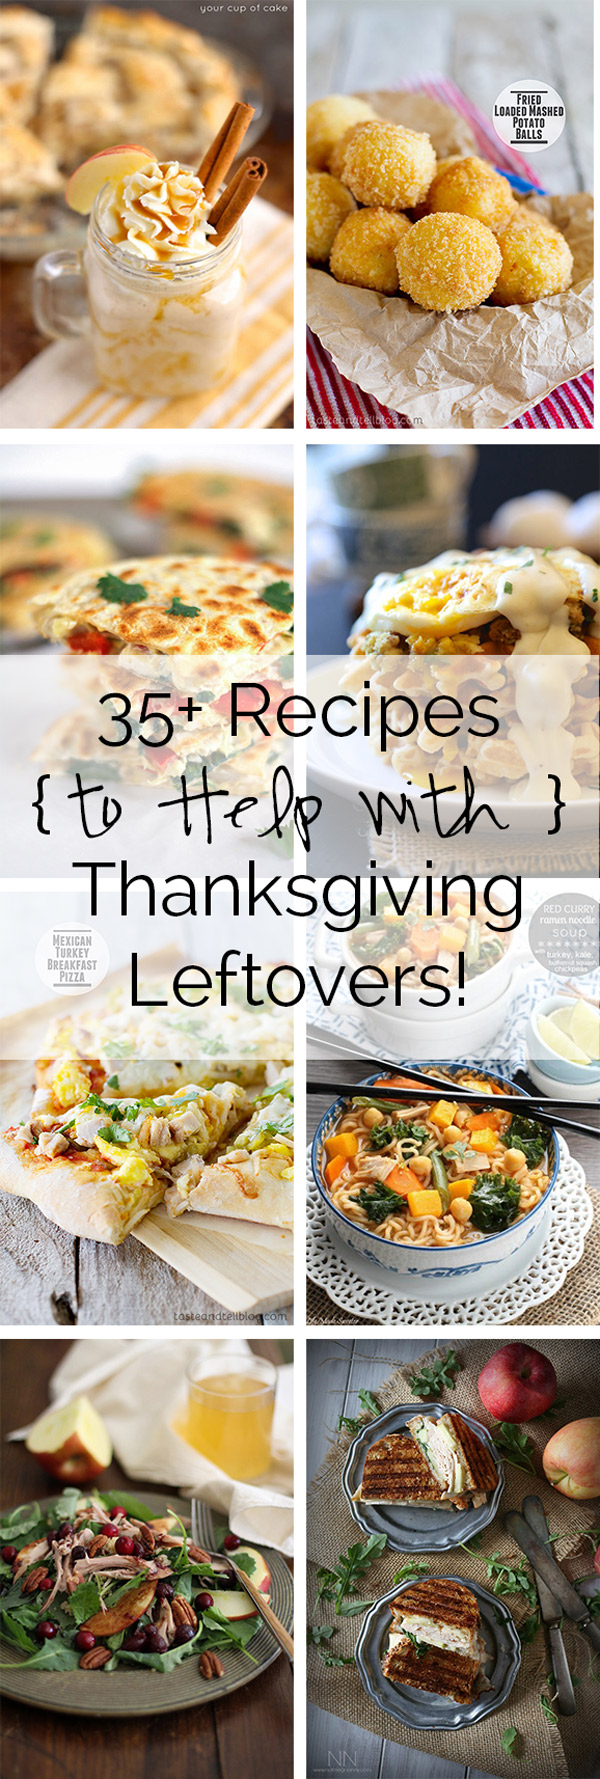 This Thanksgiving, lets be creative in the kitchen as I have a round up of 35+ recipes to use every last bit of those Thanksgiving leftovers!